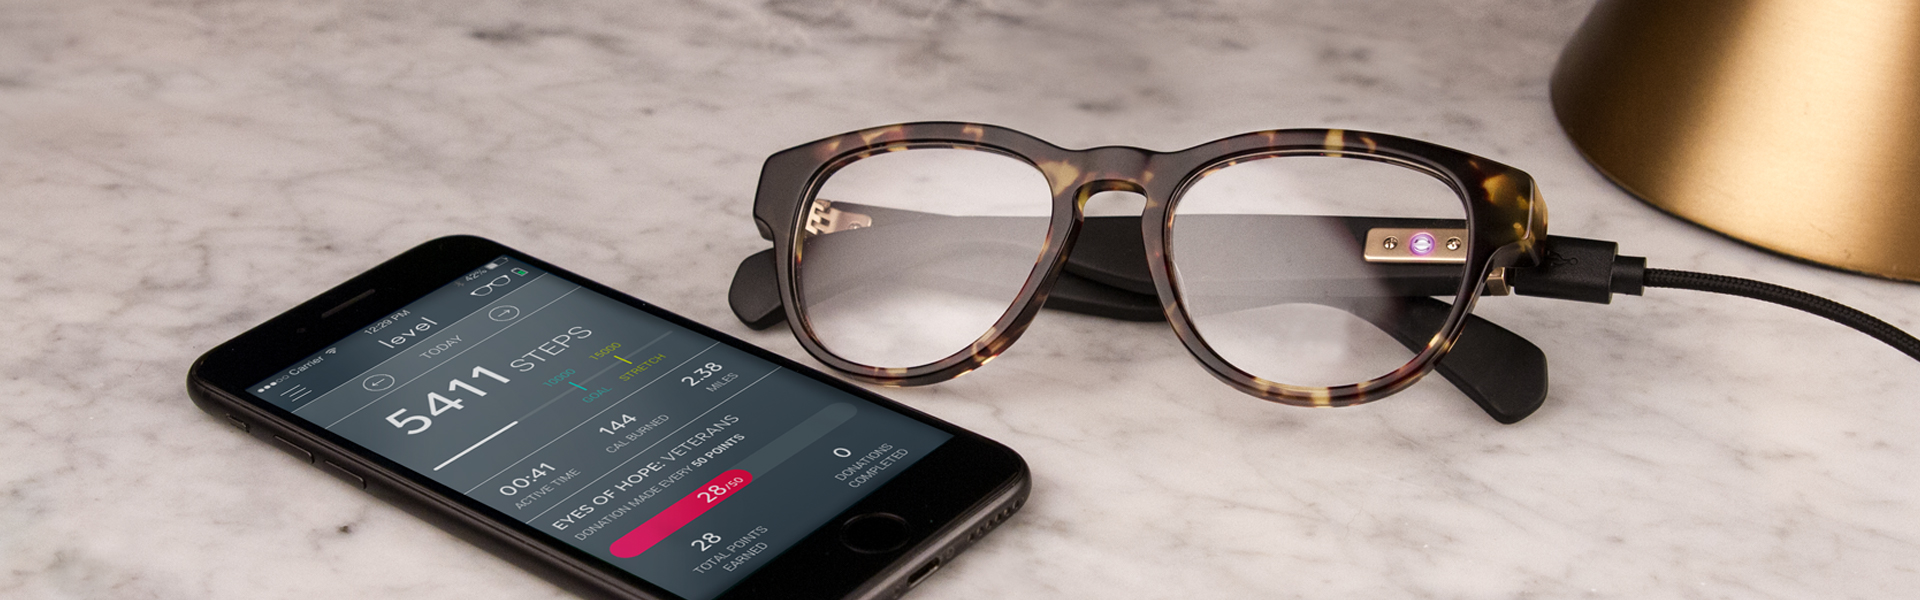 Smart Glasses with Activity Tracking Tech